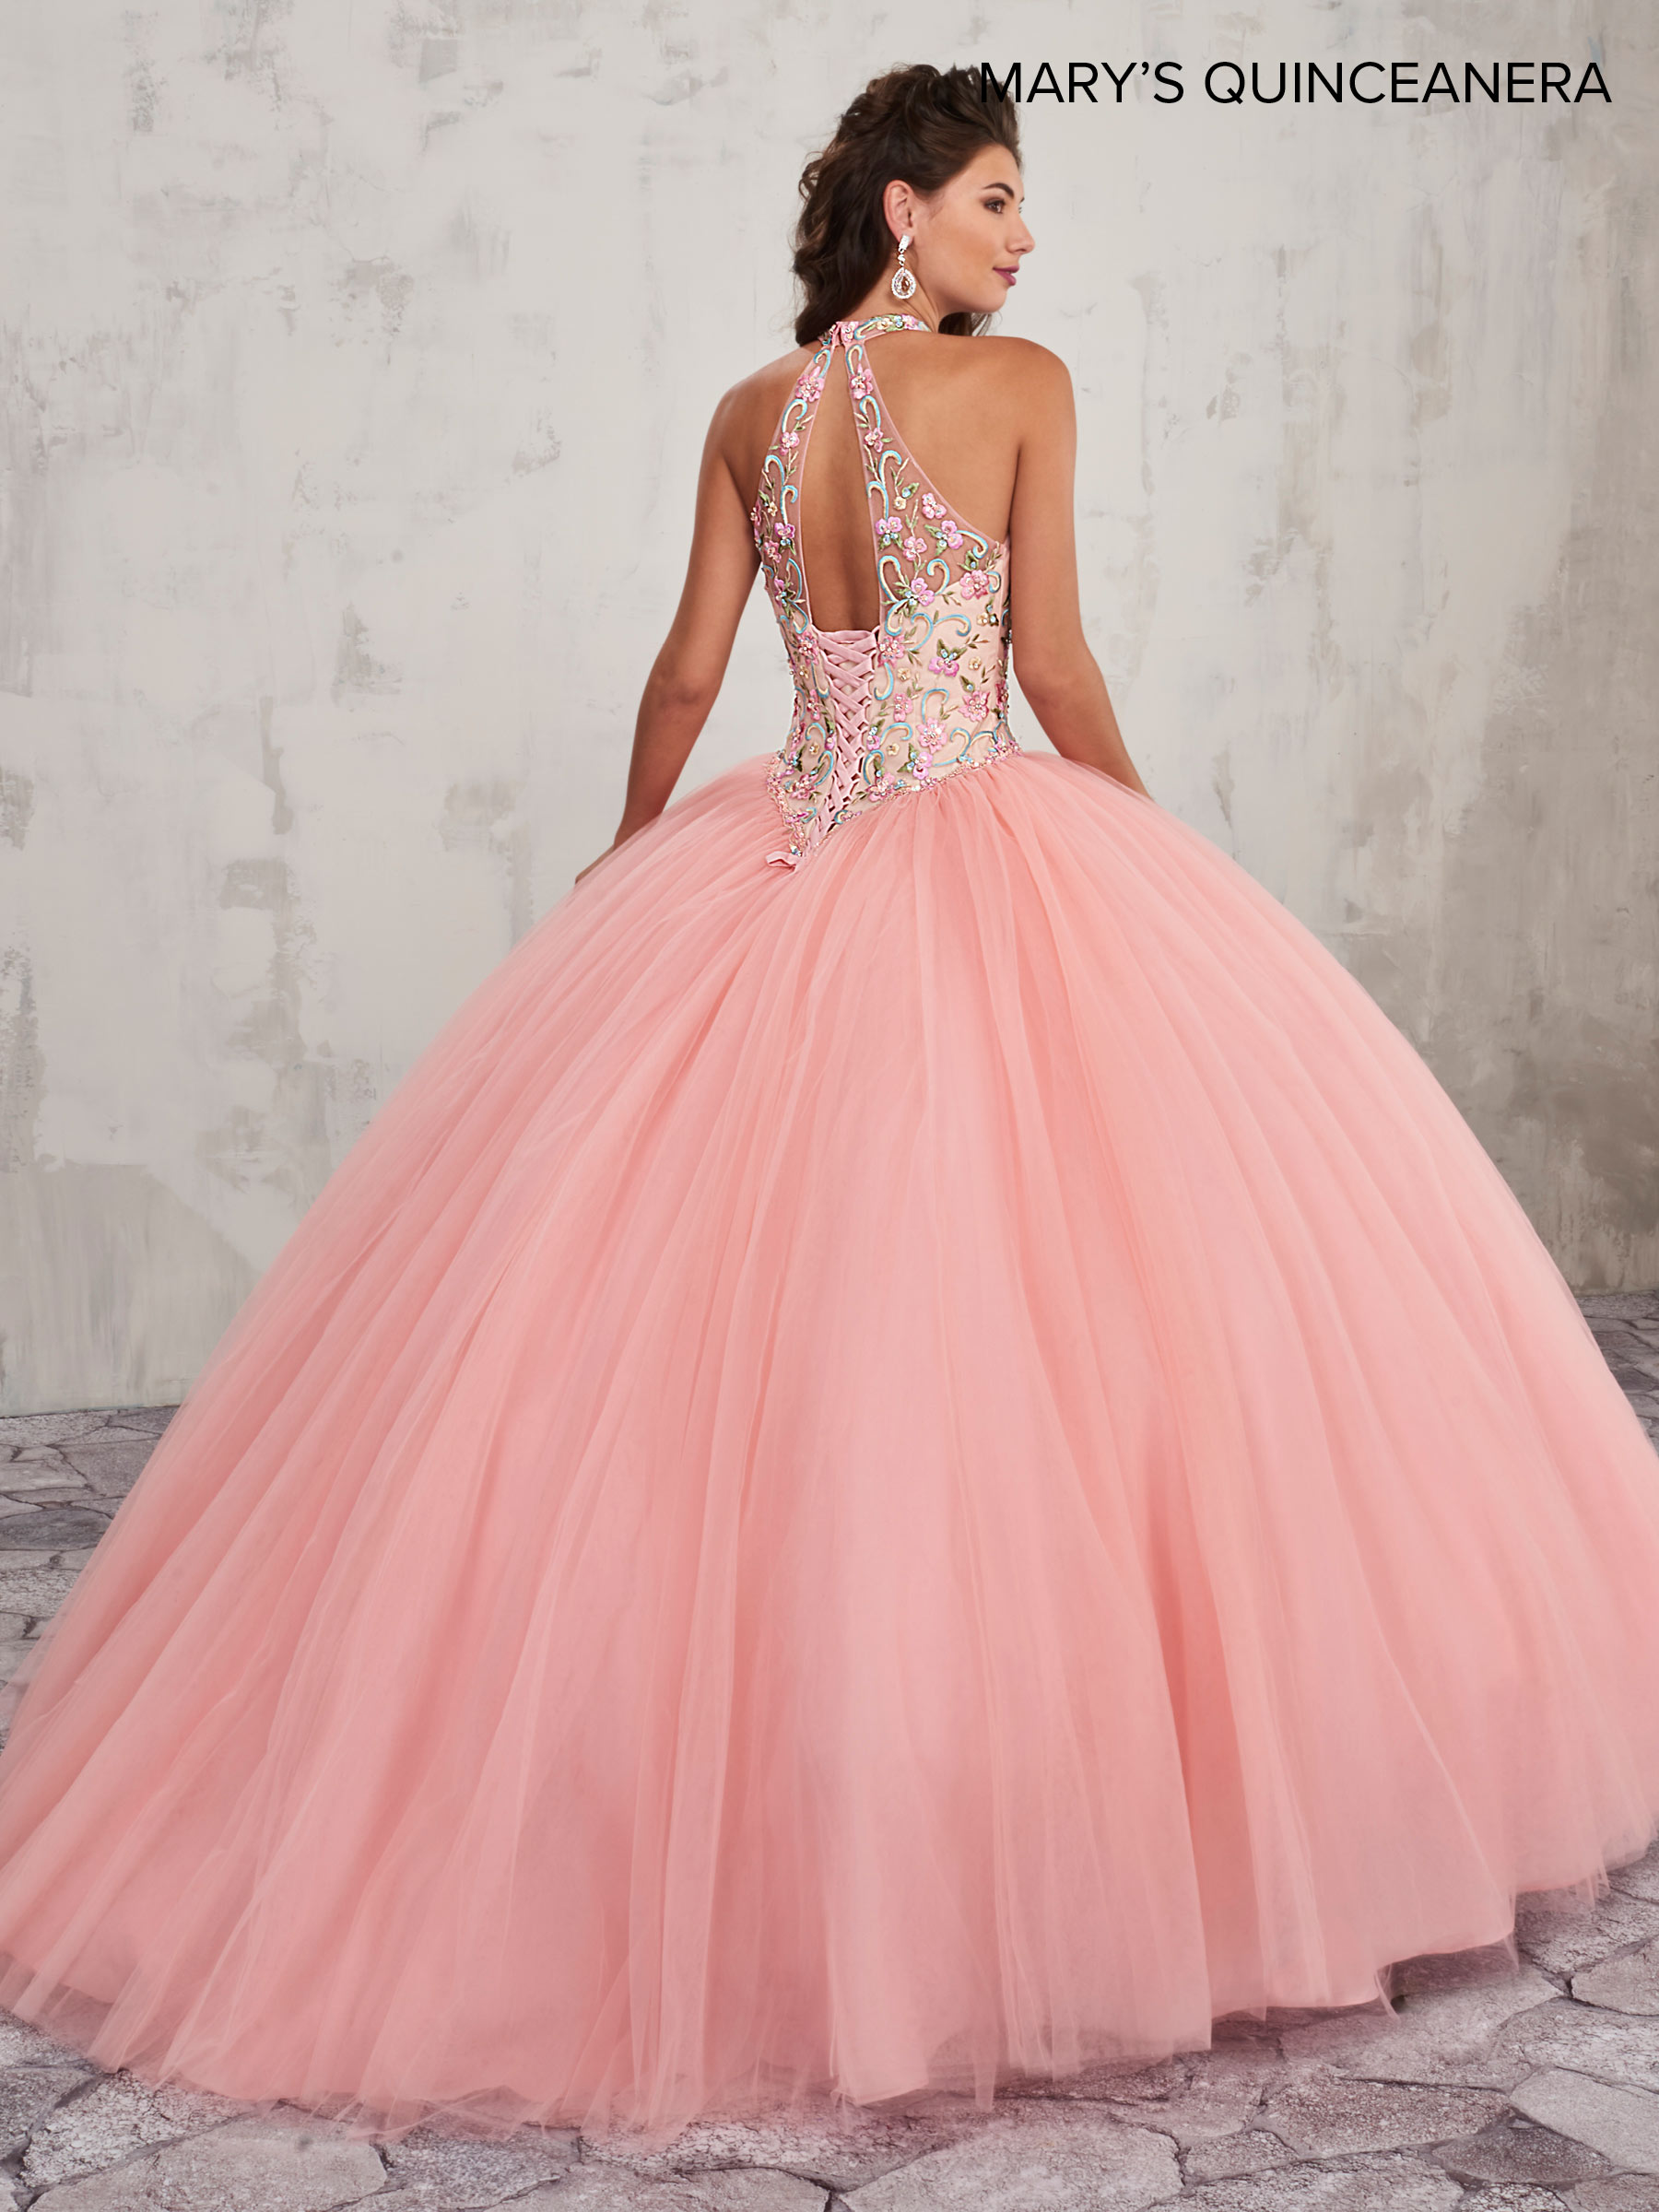 Marys Quinceanera Dresses | Mary's Quinceanera | Style - MQ2008